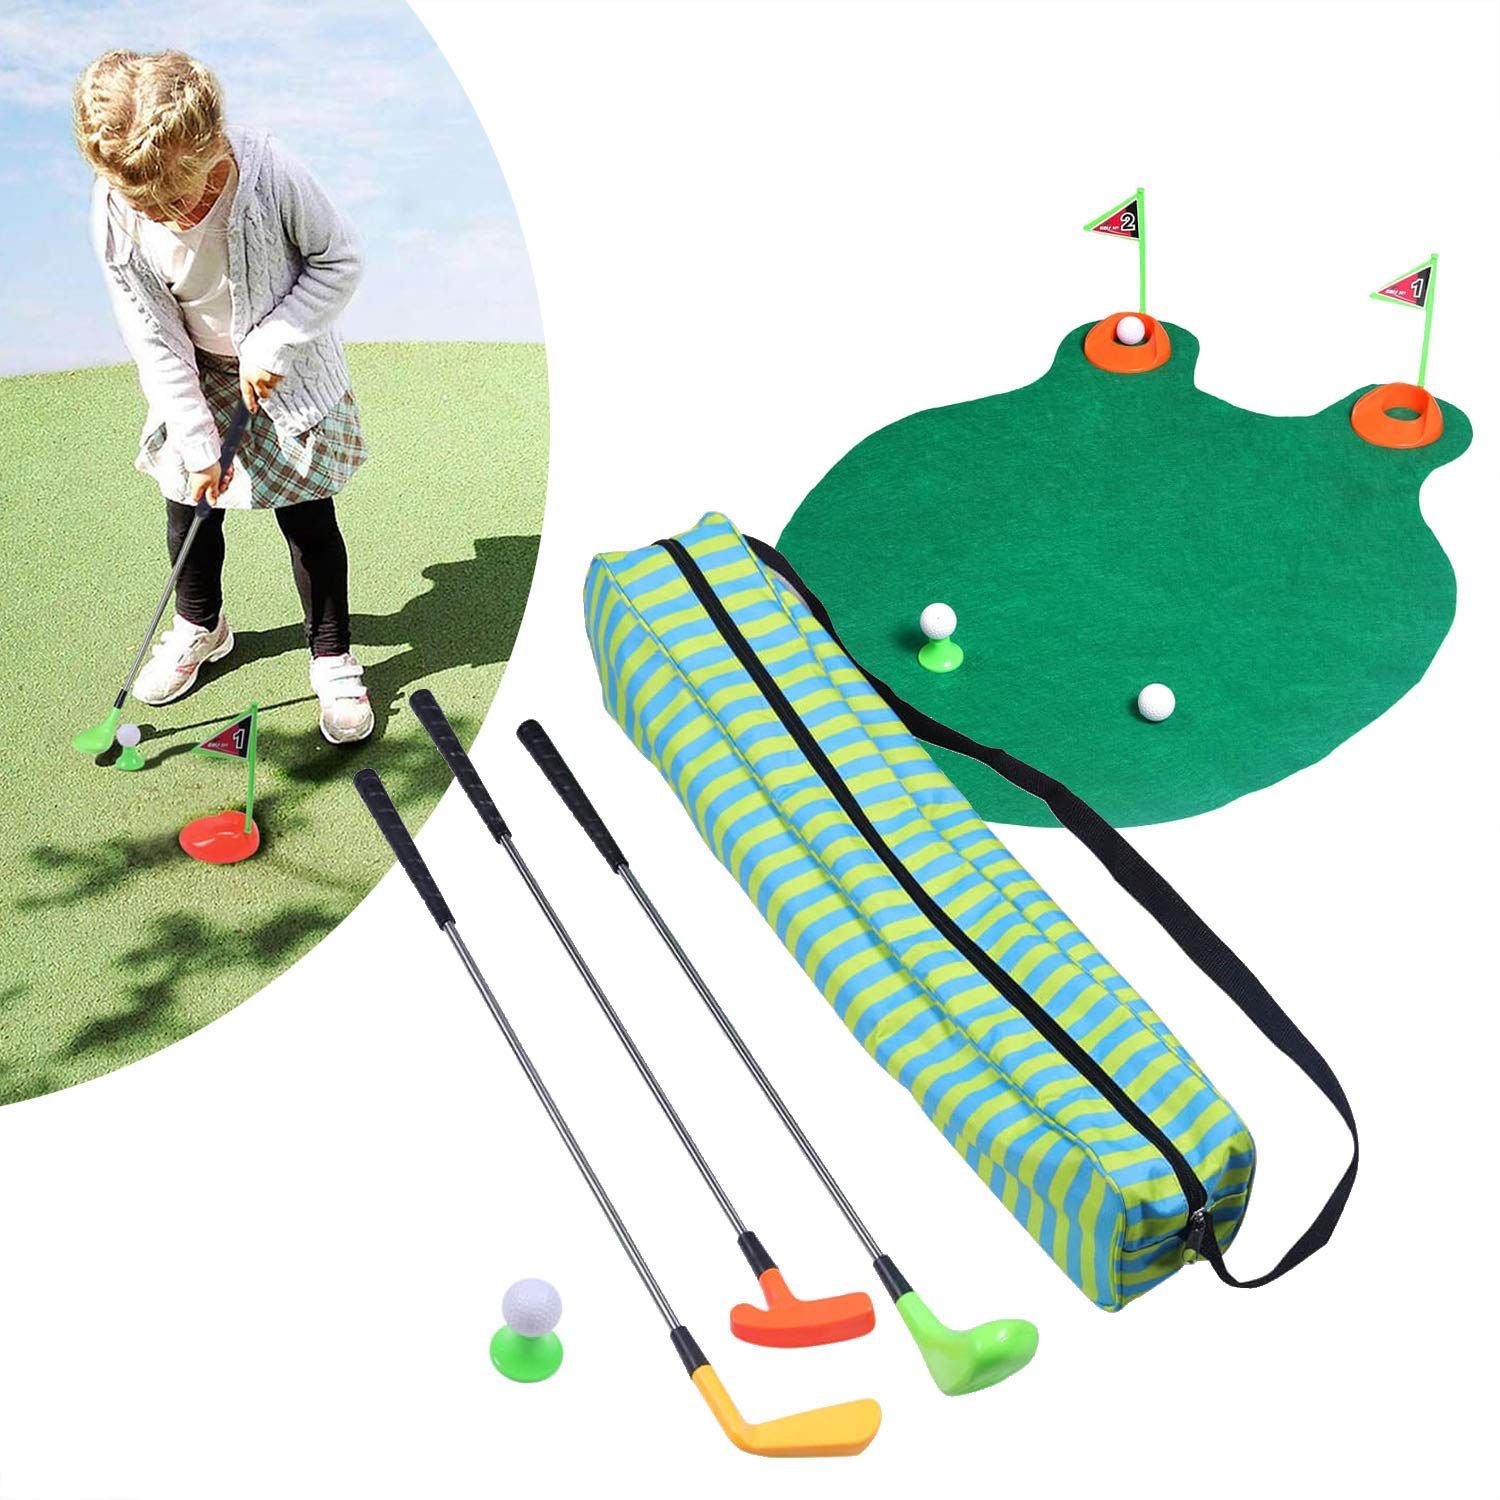 Eighth Creation Kids Golf Club Toys - Best Golf Clubs, Putting Green Mat, & Mini Golf Bag Play Set for Toddler & Preschool Children | Great Educational Starter Kit for Happy Indoor & Outdoor Golfing by Eighth Creation